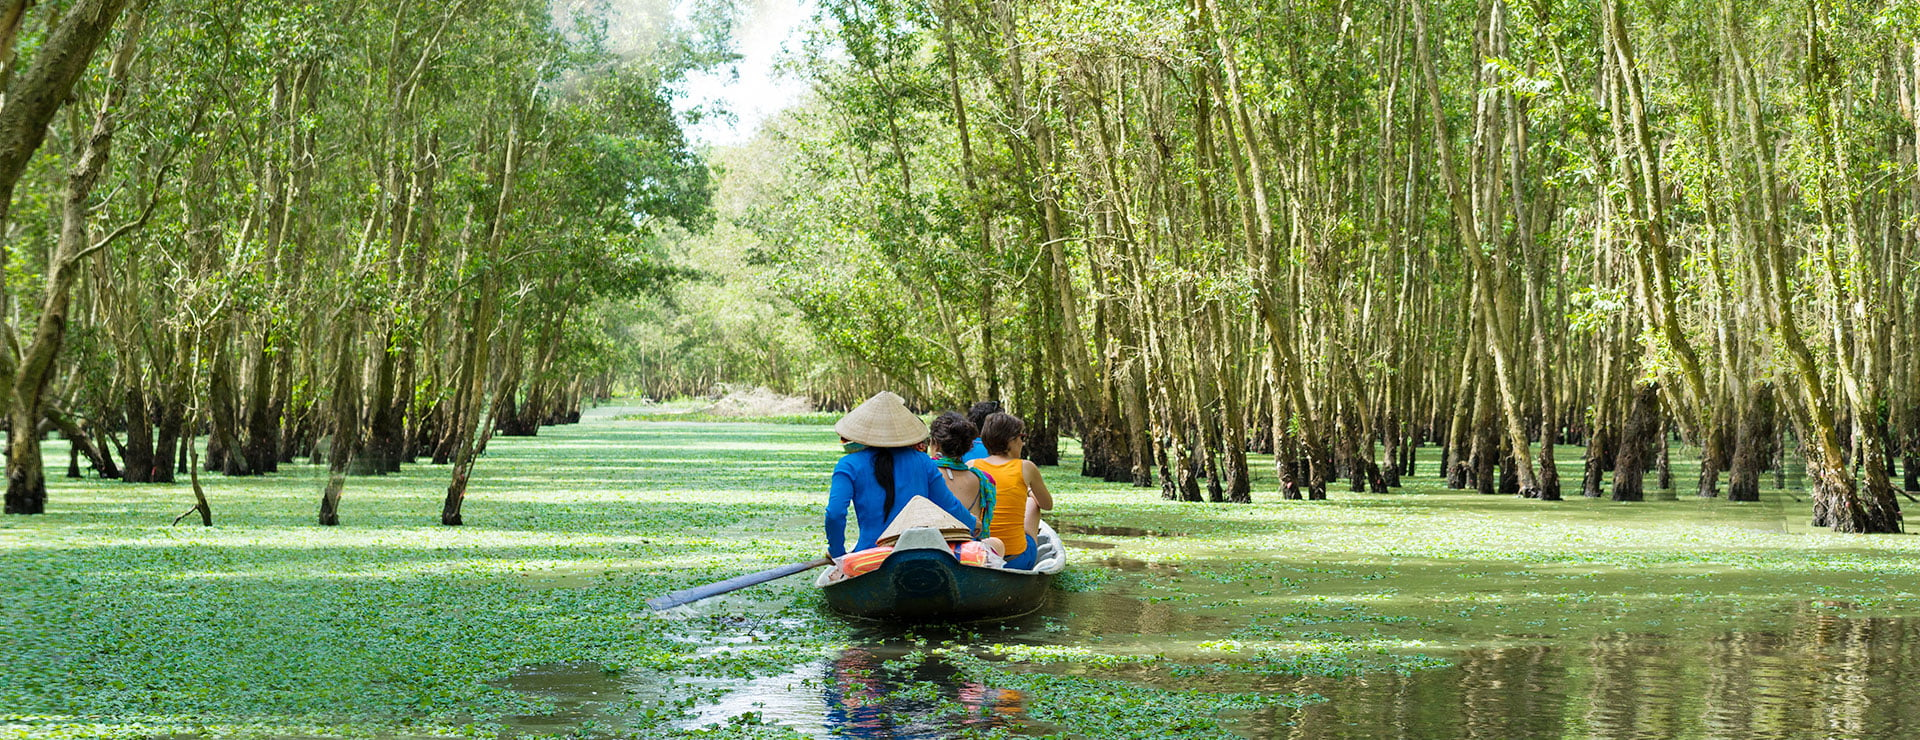 Vietnam family travel tips: All you need to know